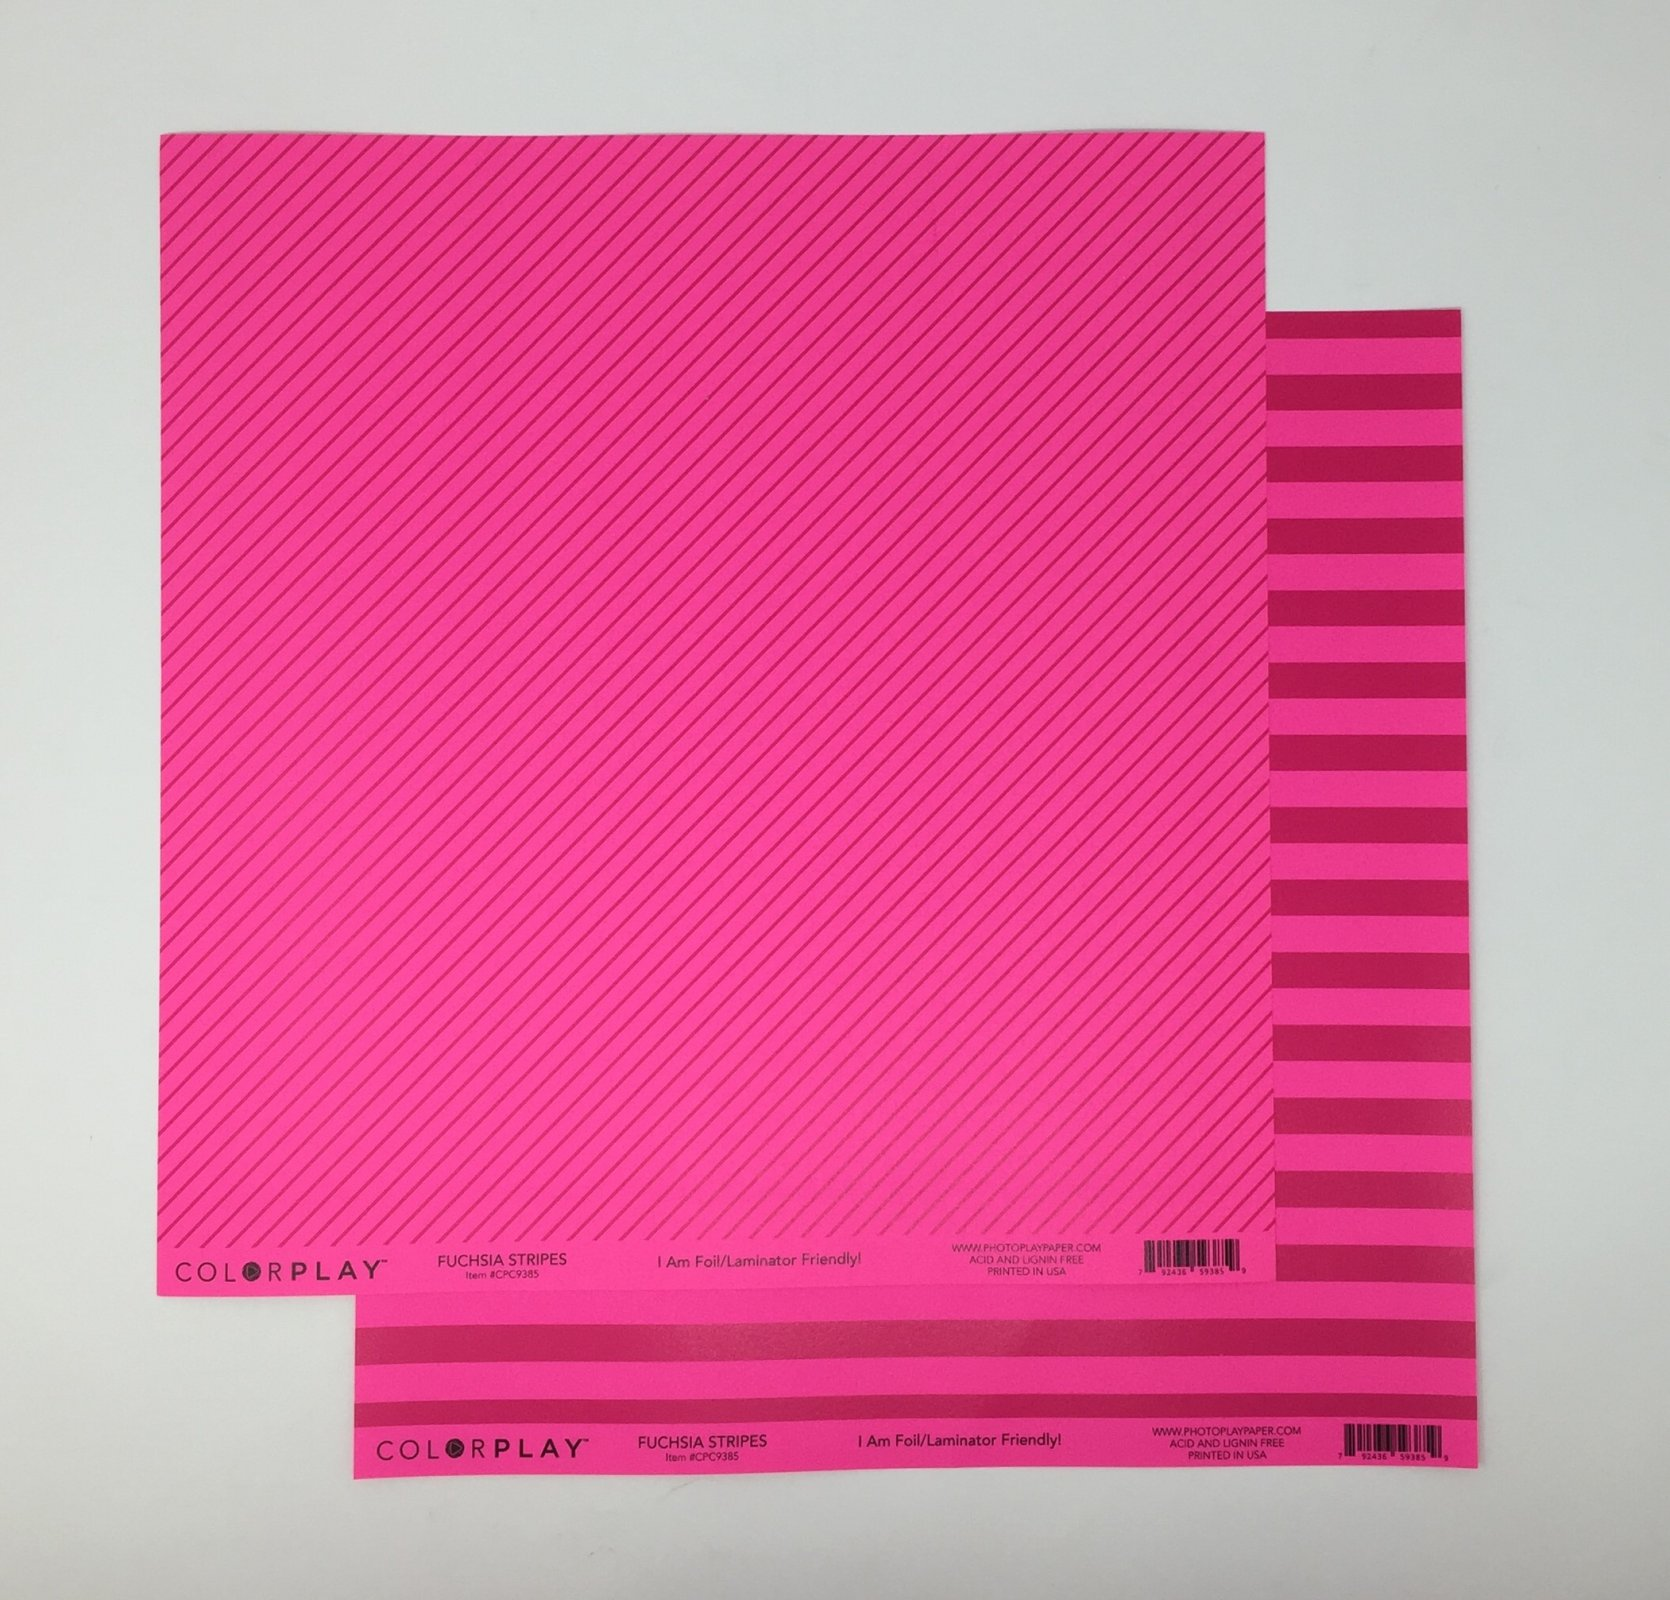 ^ColorPlay 12x12 Cardstock - Fuchsia Stripes (CLEARANCE)